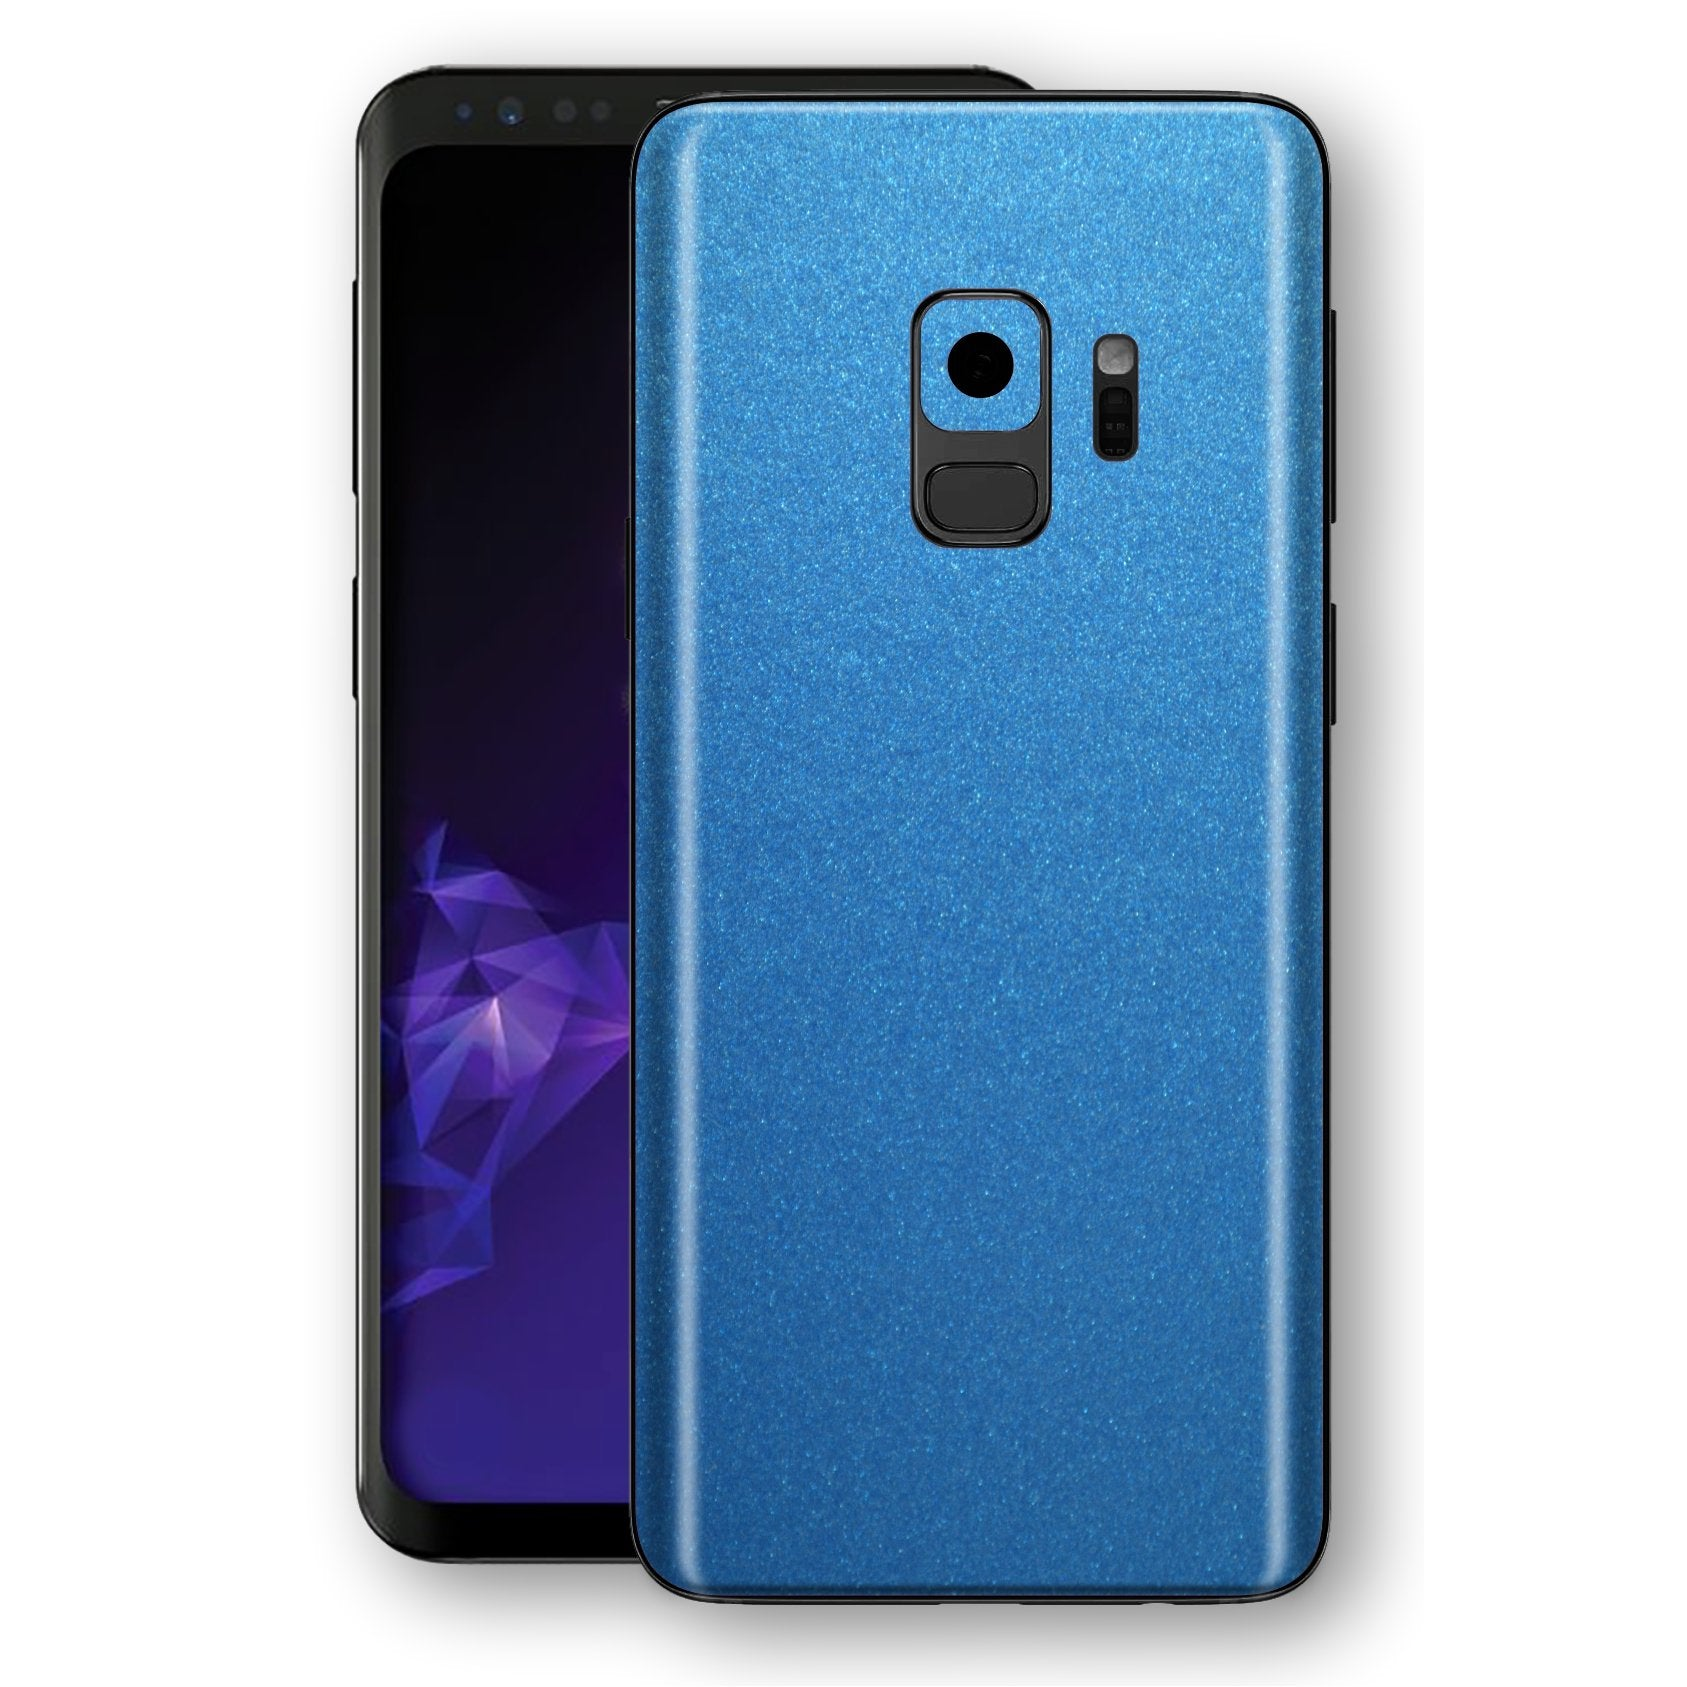 Samsung GALAXY S9 Azure Blue Matt Metallic Skin, Decal, Wrap, Protector, Cover by EasySkinz | EasySkinz.com